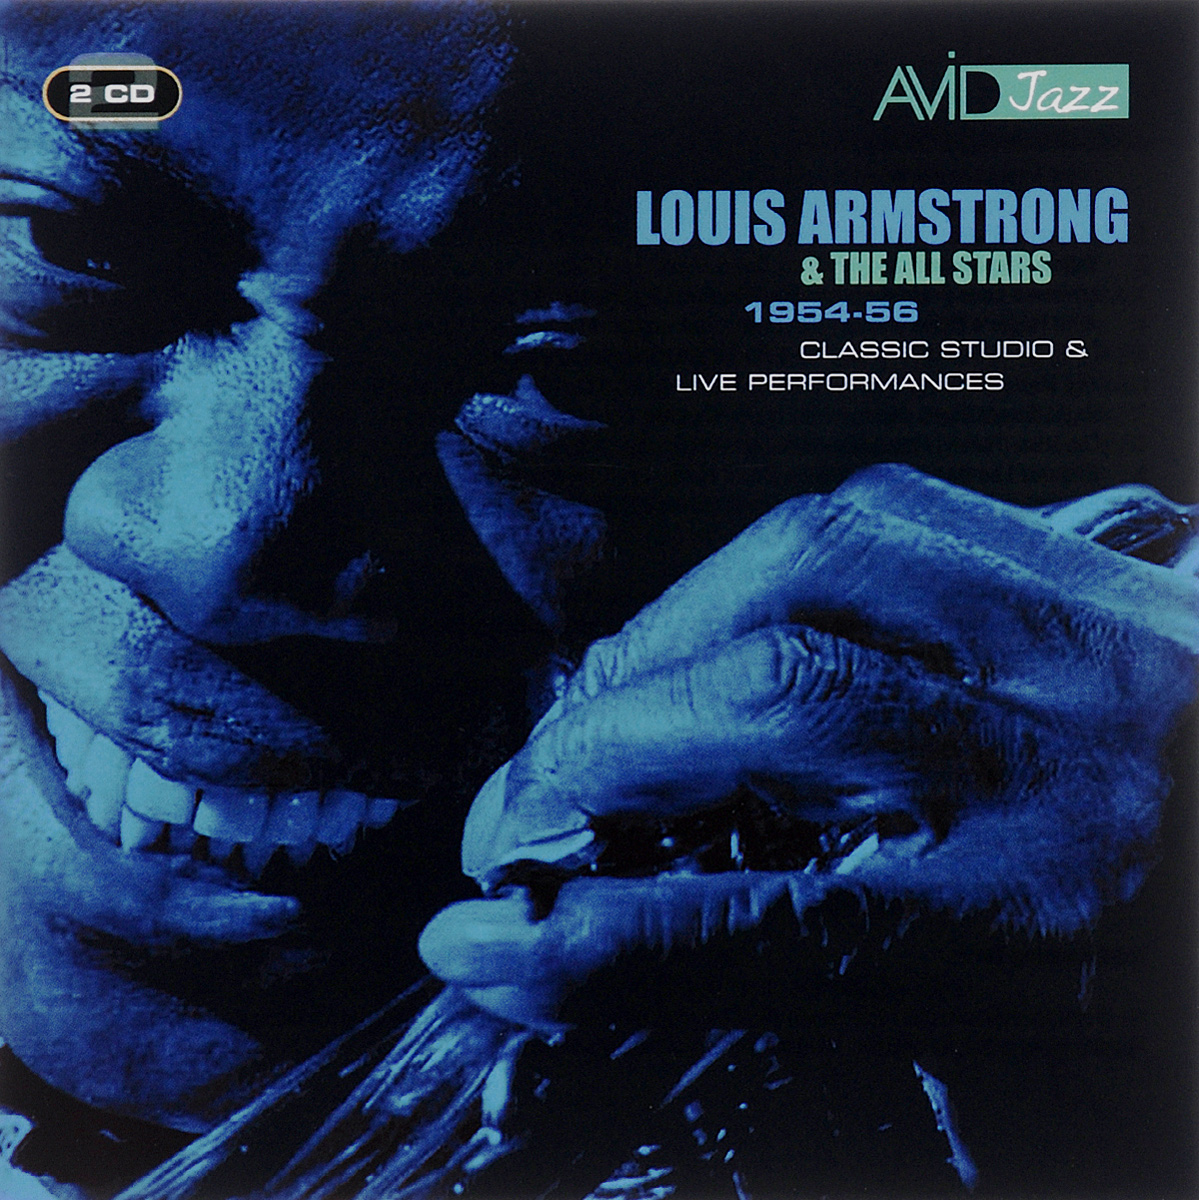 Луи Армстронг,Louis Armstrong & The All Stars Avid Jazz. Louis Armstrong, The All Stars. Louis Armstrong & The All Stars 1954-56 (2 CD) milky disco three to the stars 2 cd